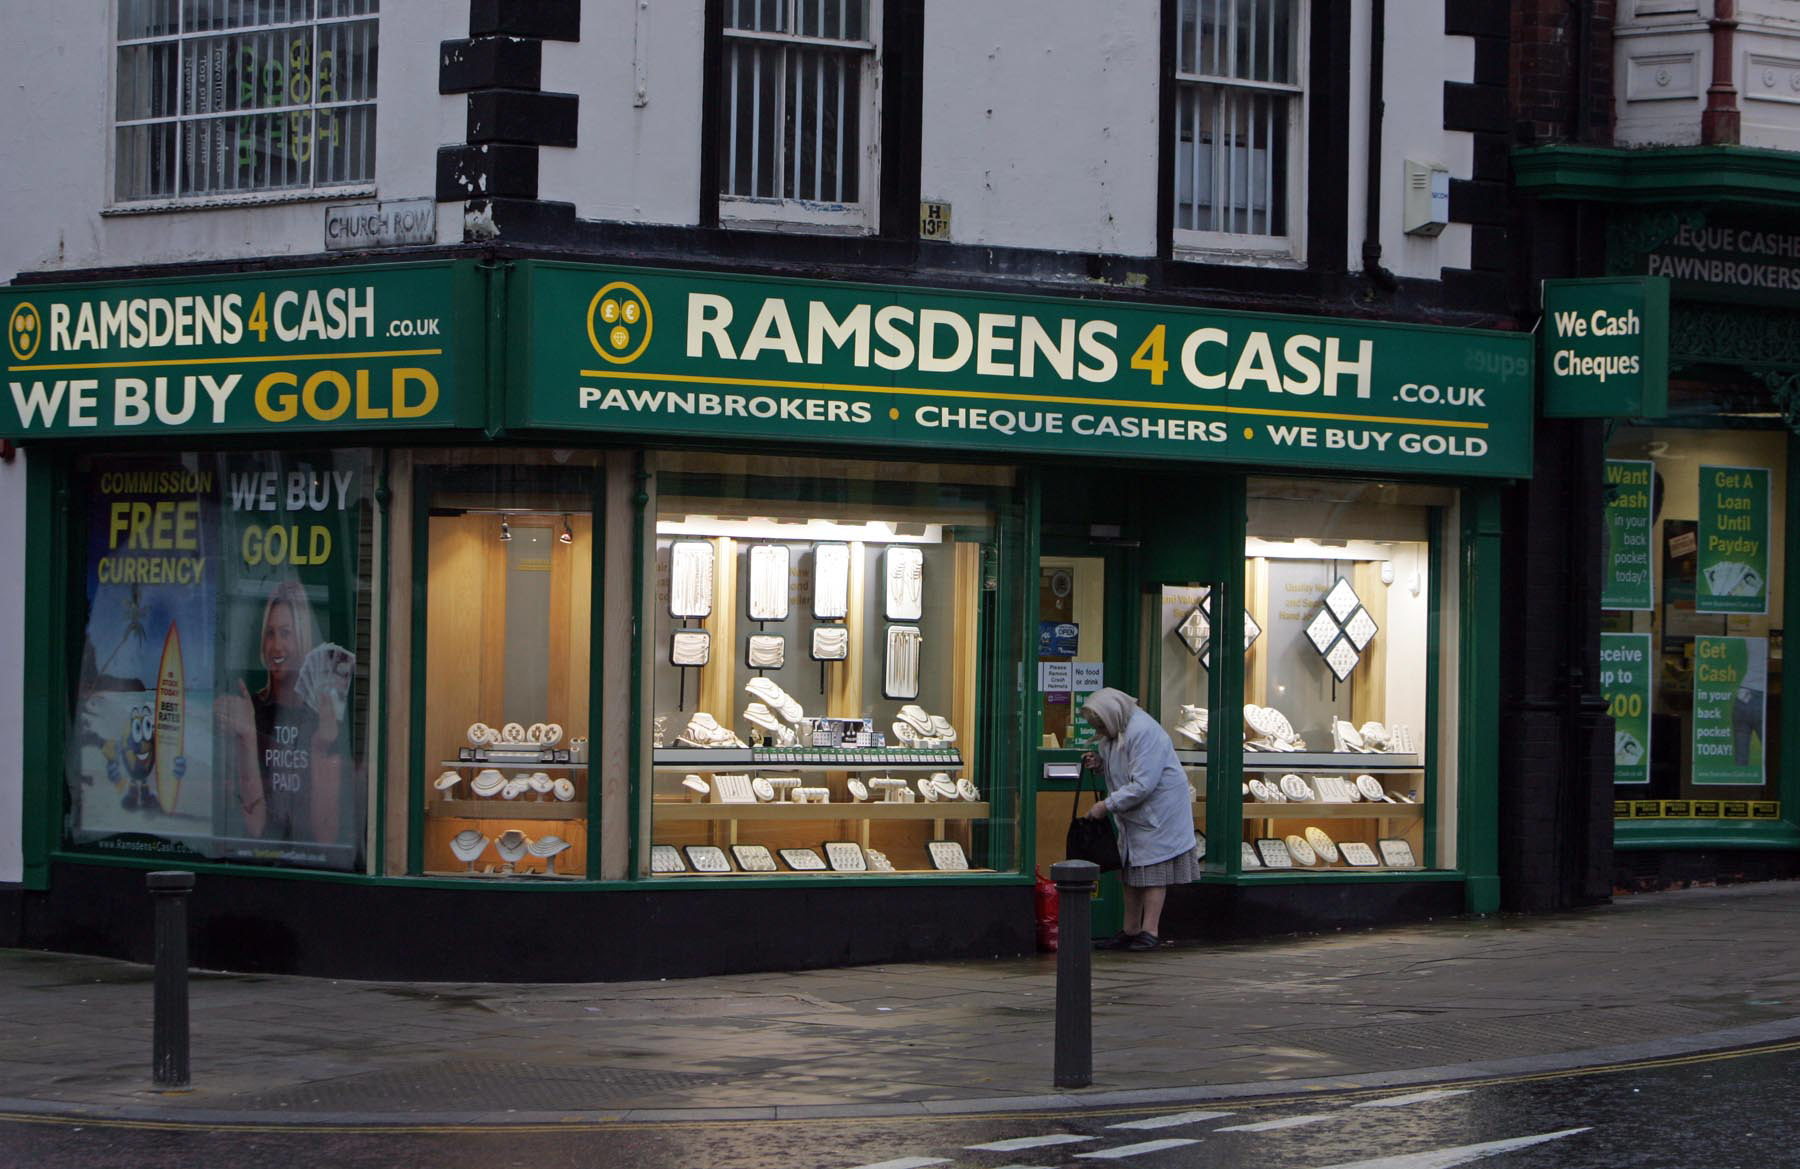 Ramsdens pawnbrokers, on Tubwell Row, Darlington